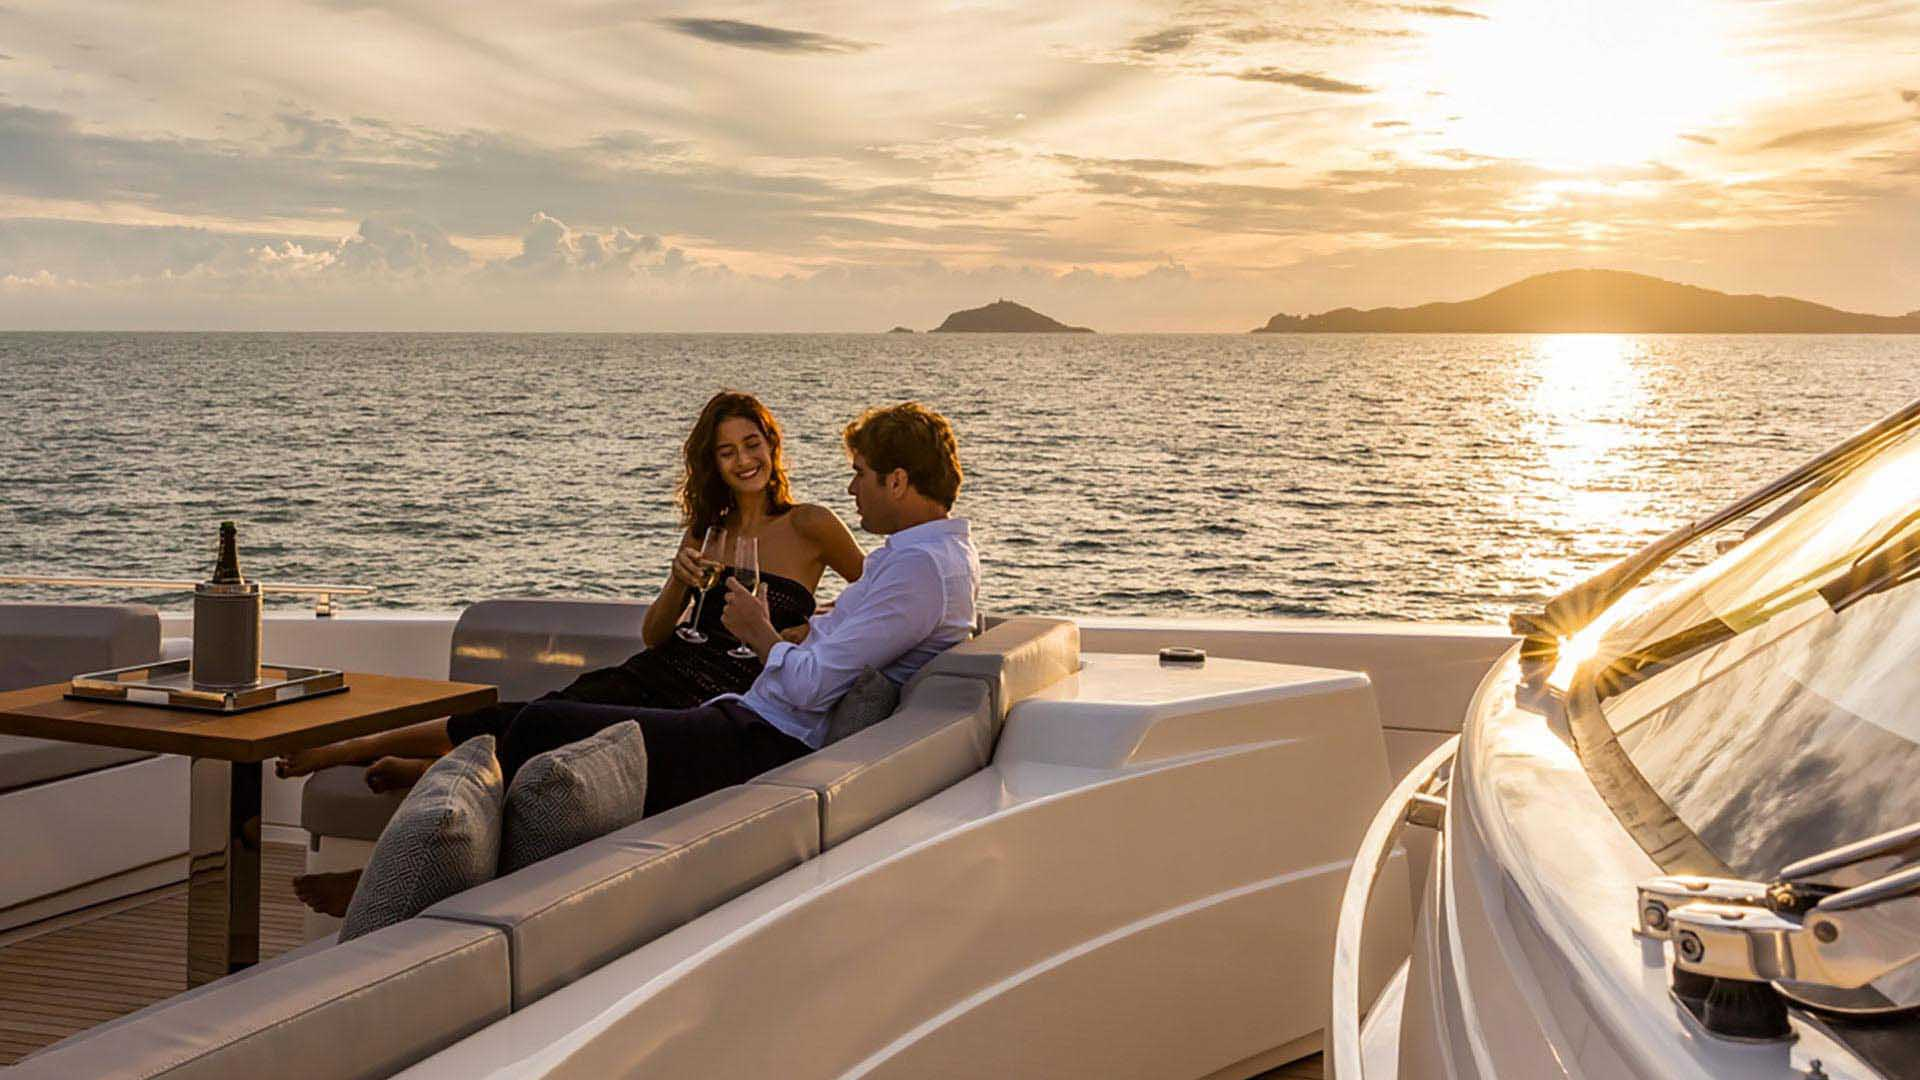 Become an Exhibitor at The Thailand International Boat Show in Phuket